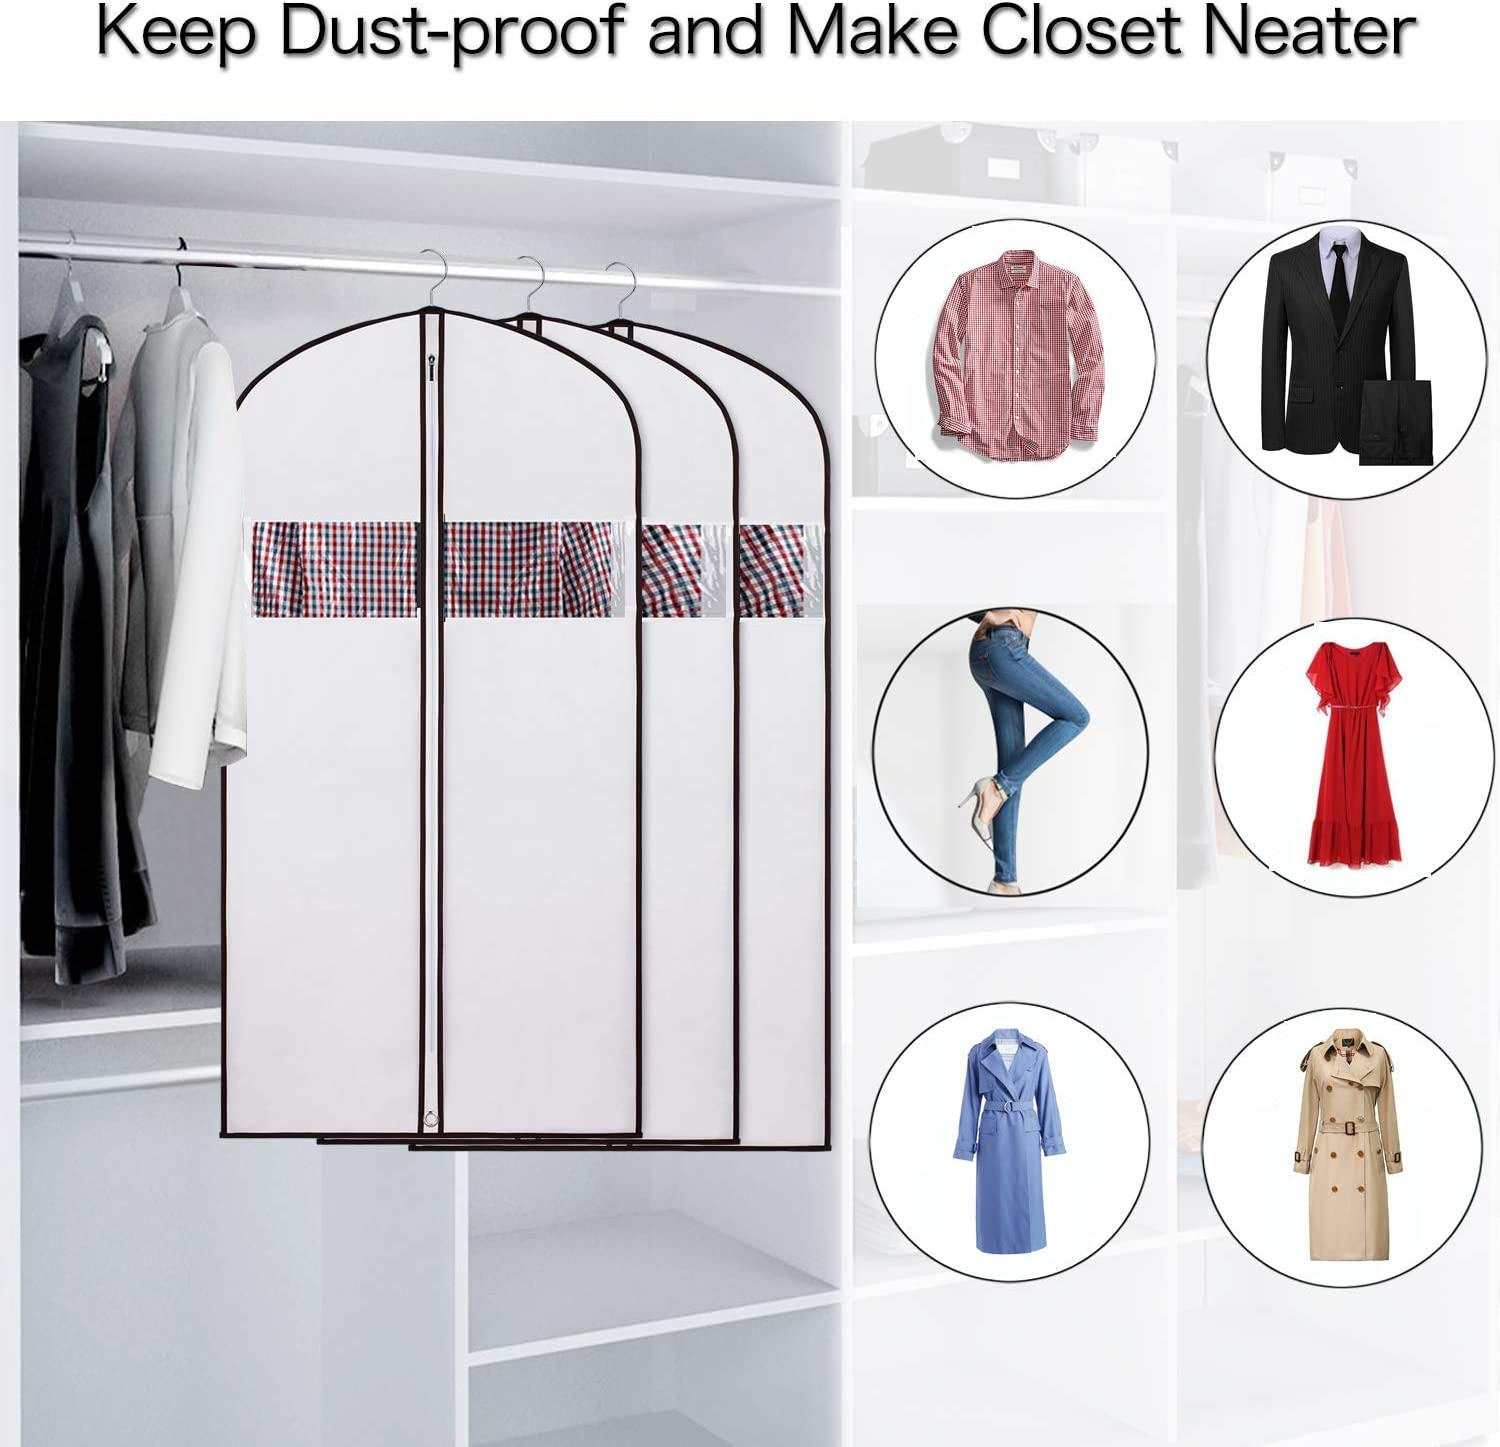 KEEGH Garment Covers Clothes Protector Bag for Storage and Travel 54inch Moth Proof Waterproof Dustproof Anti-mite Breathable for Dress Costumes Suits Gowns Coats